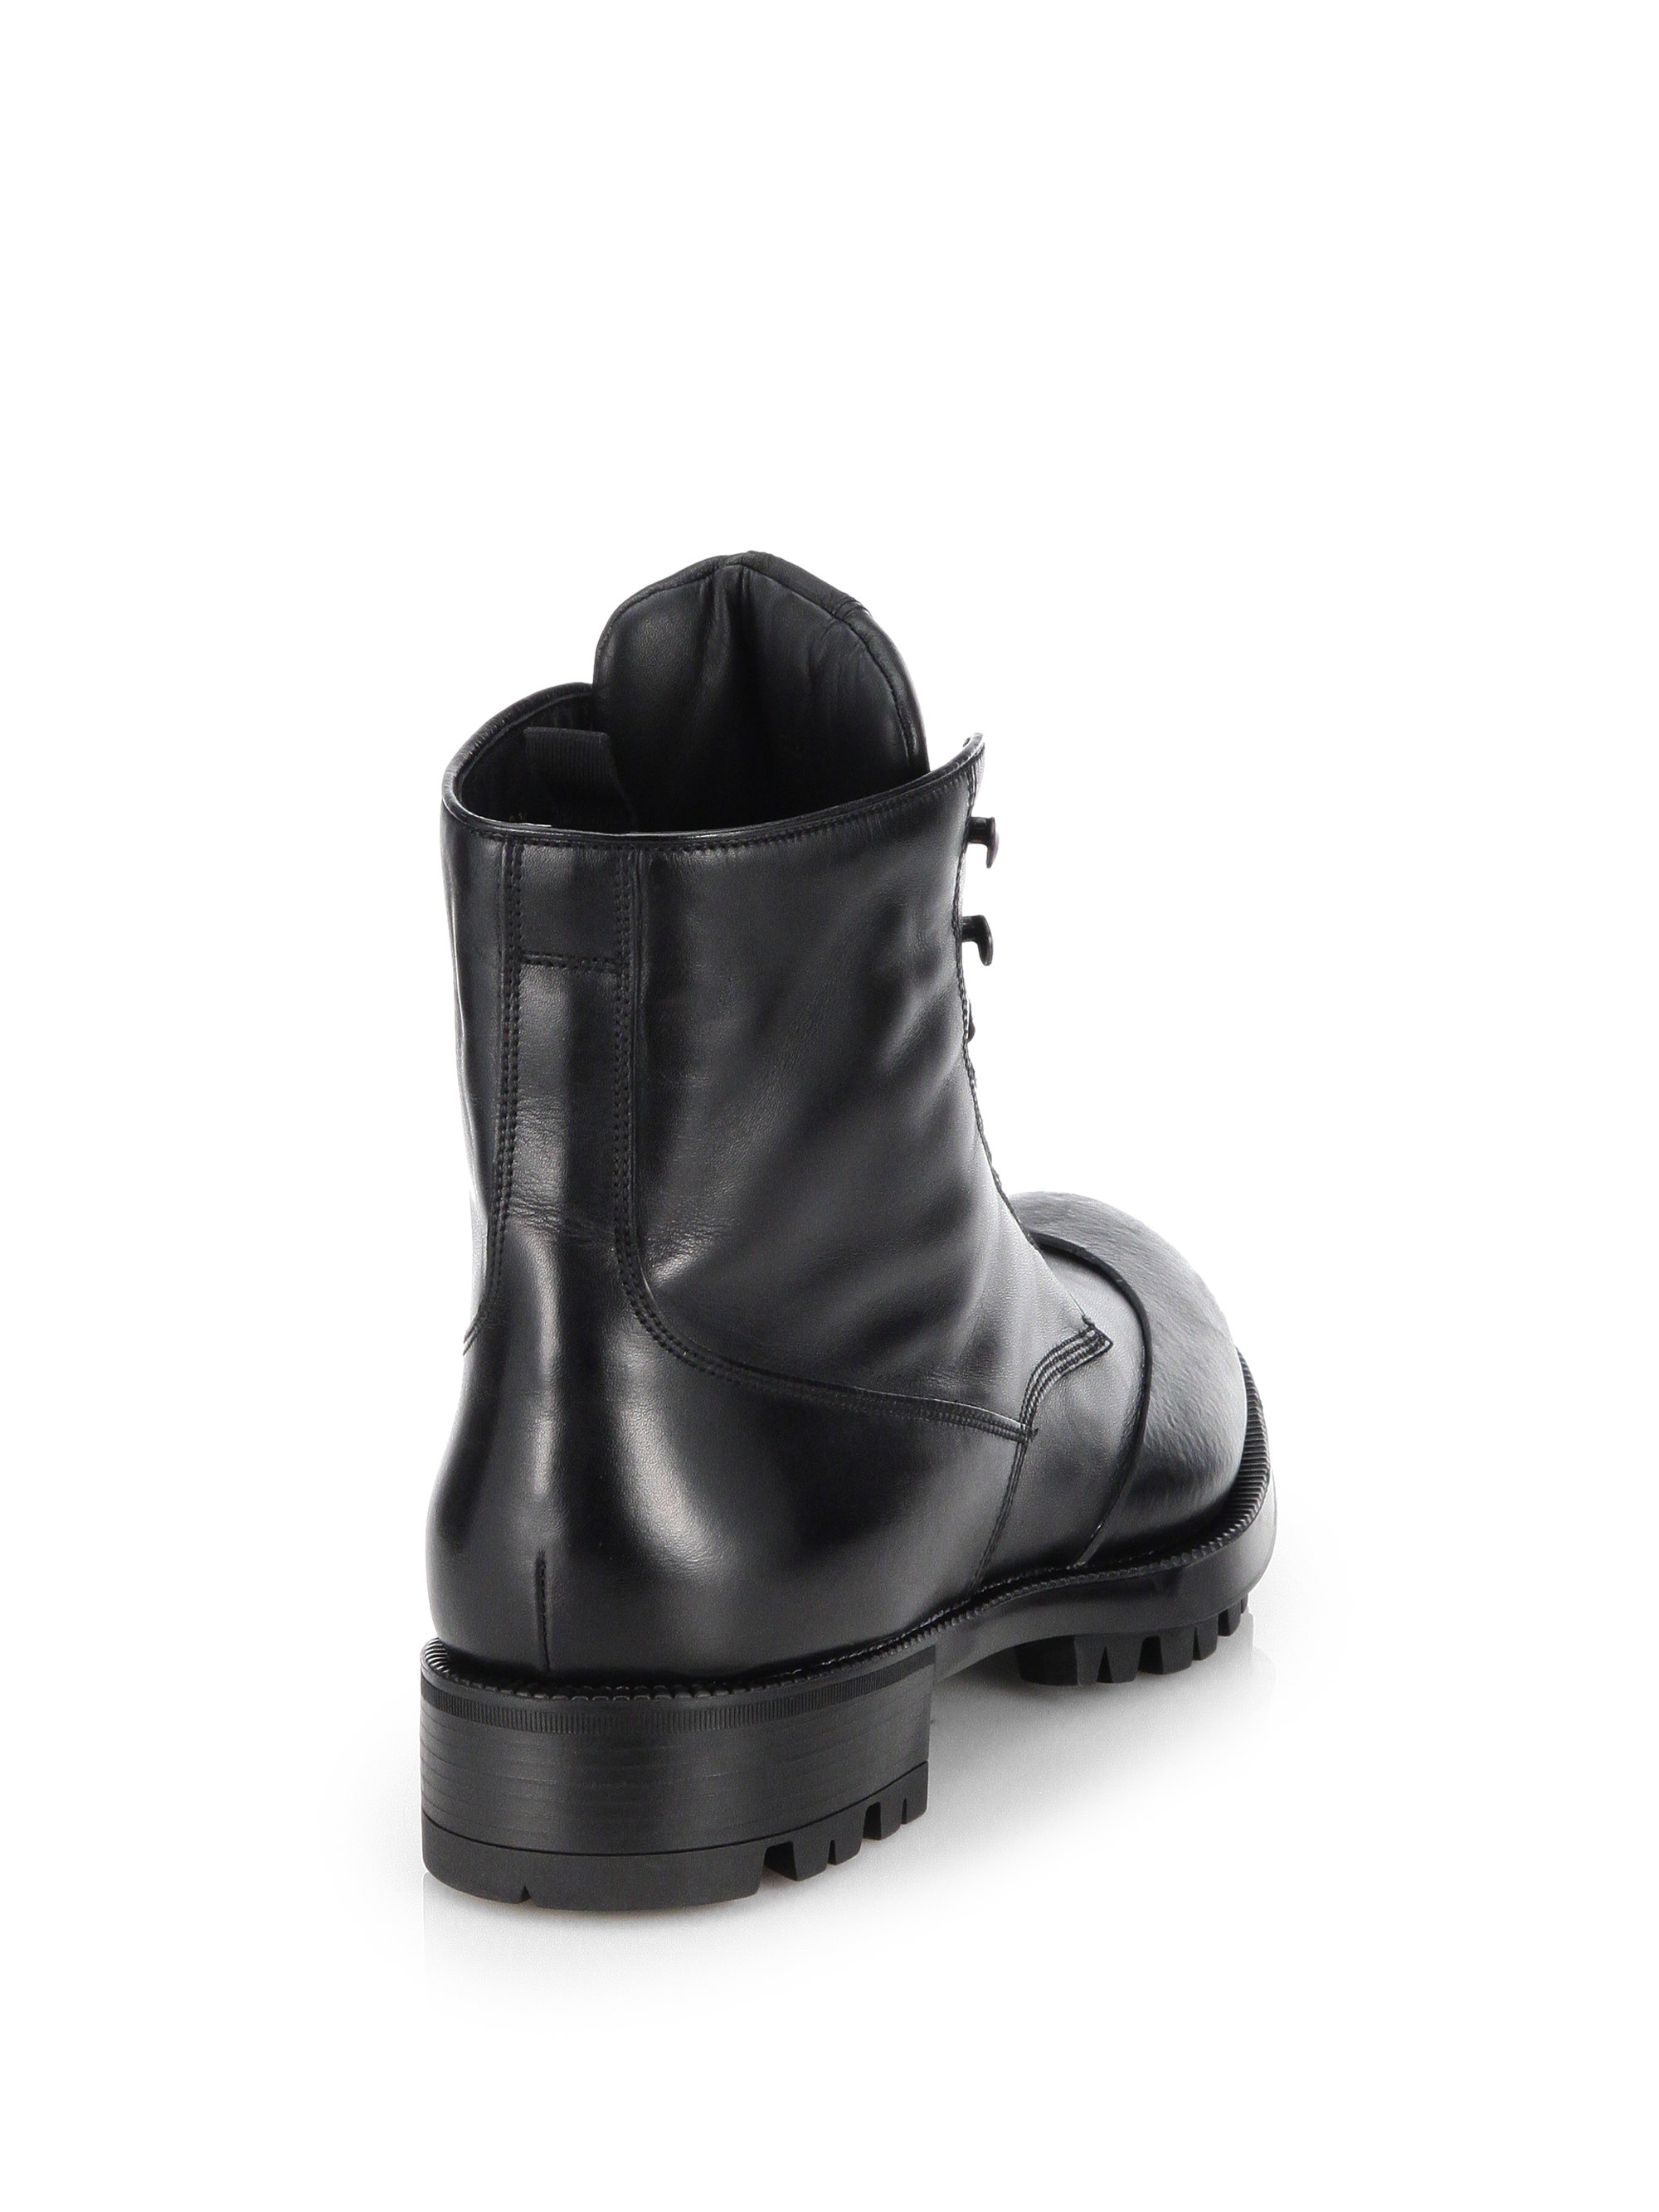 99355f3a936 Prada Black Laceup Leather Combat Boots for men